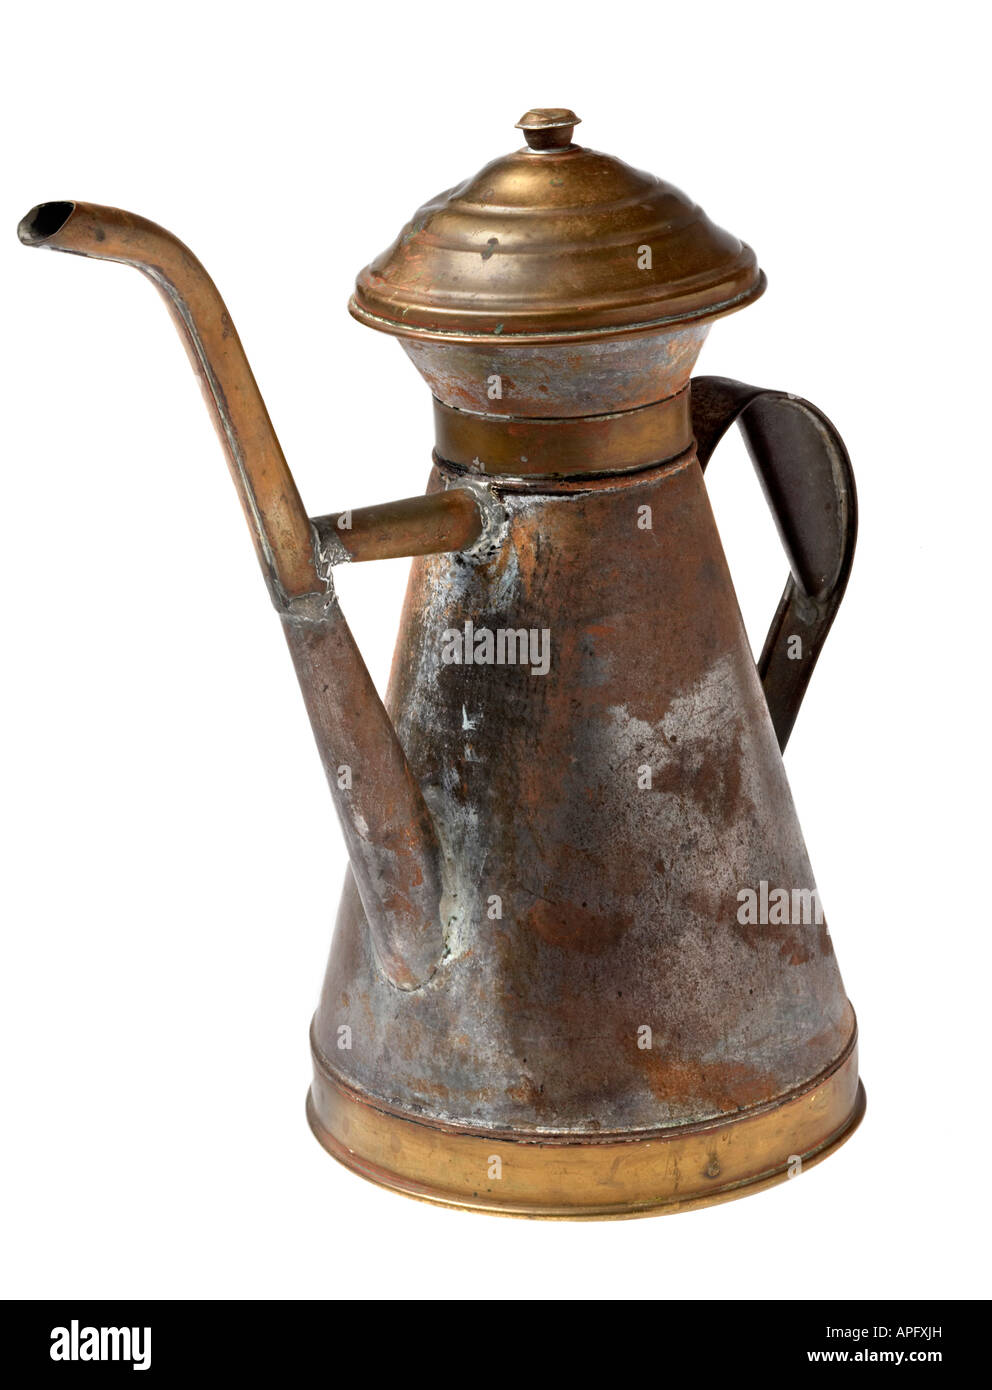 Arts & Crafts Movement Objective Vintage Craftsman Company Handmade Copper Watering Can Periods & Styles